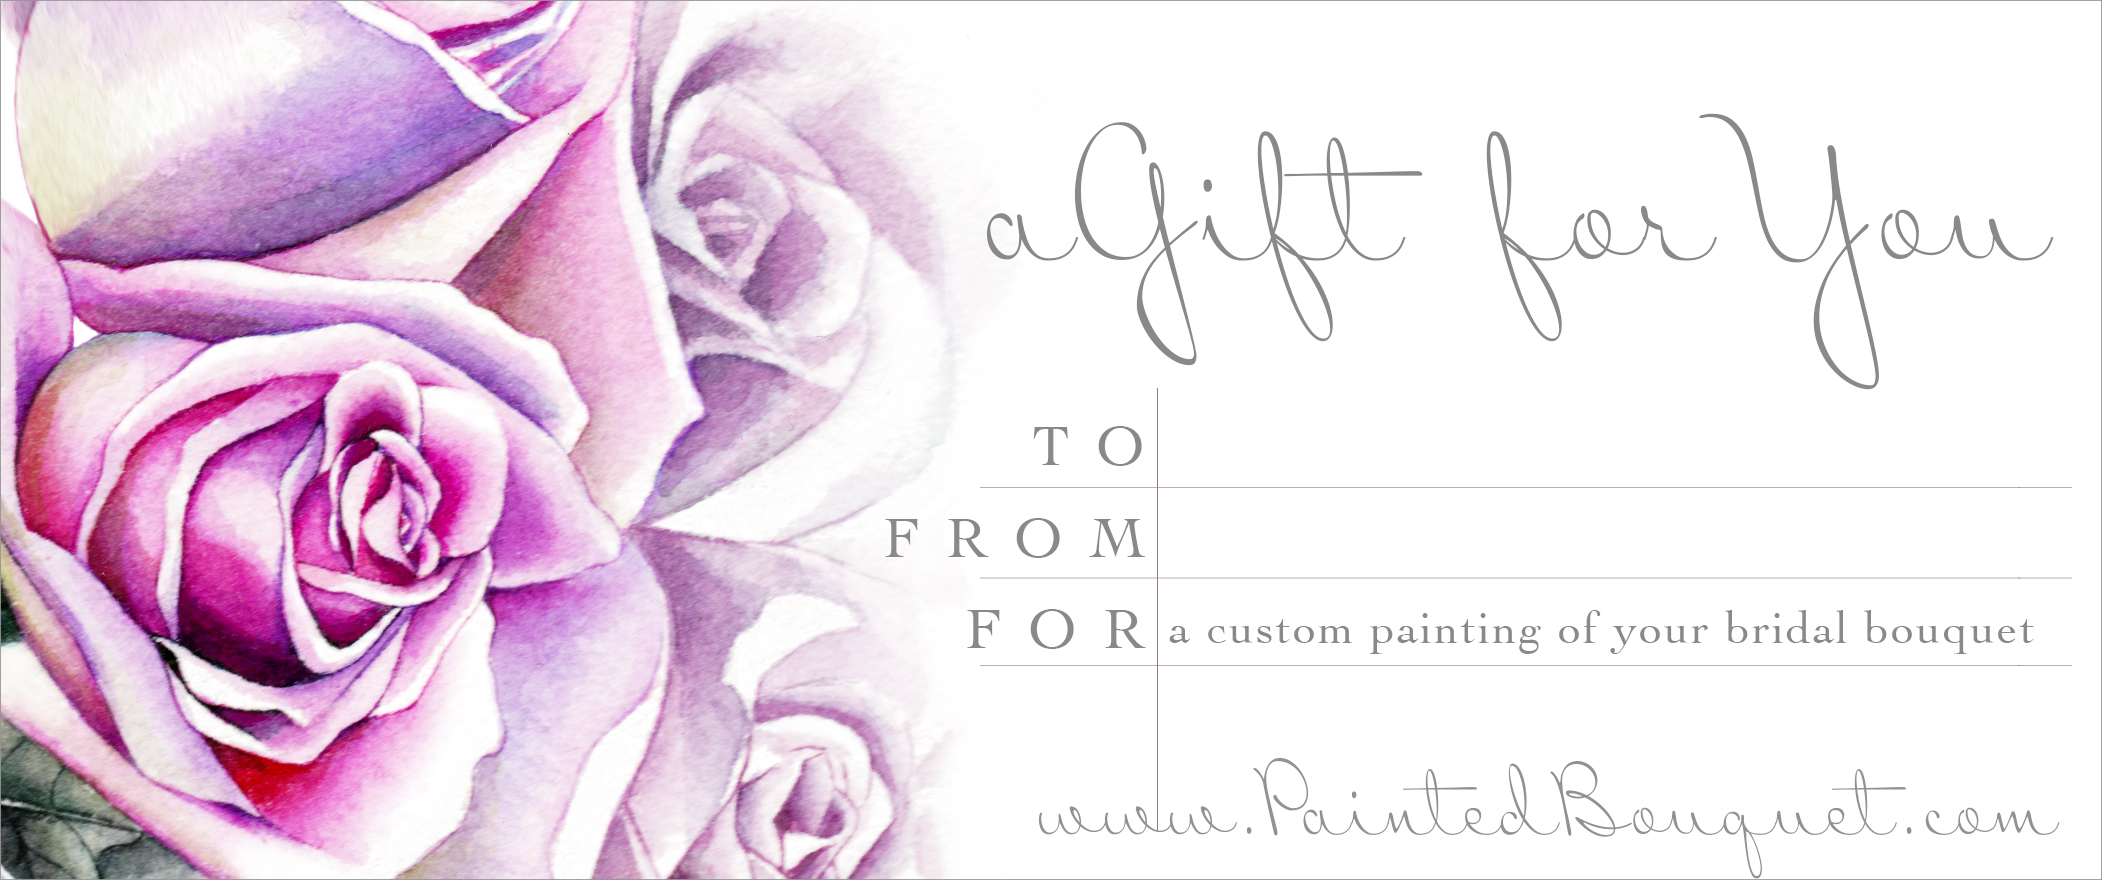 Gift Certificates are a great option to gift on your loved one's special day!